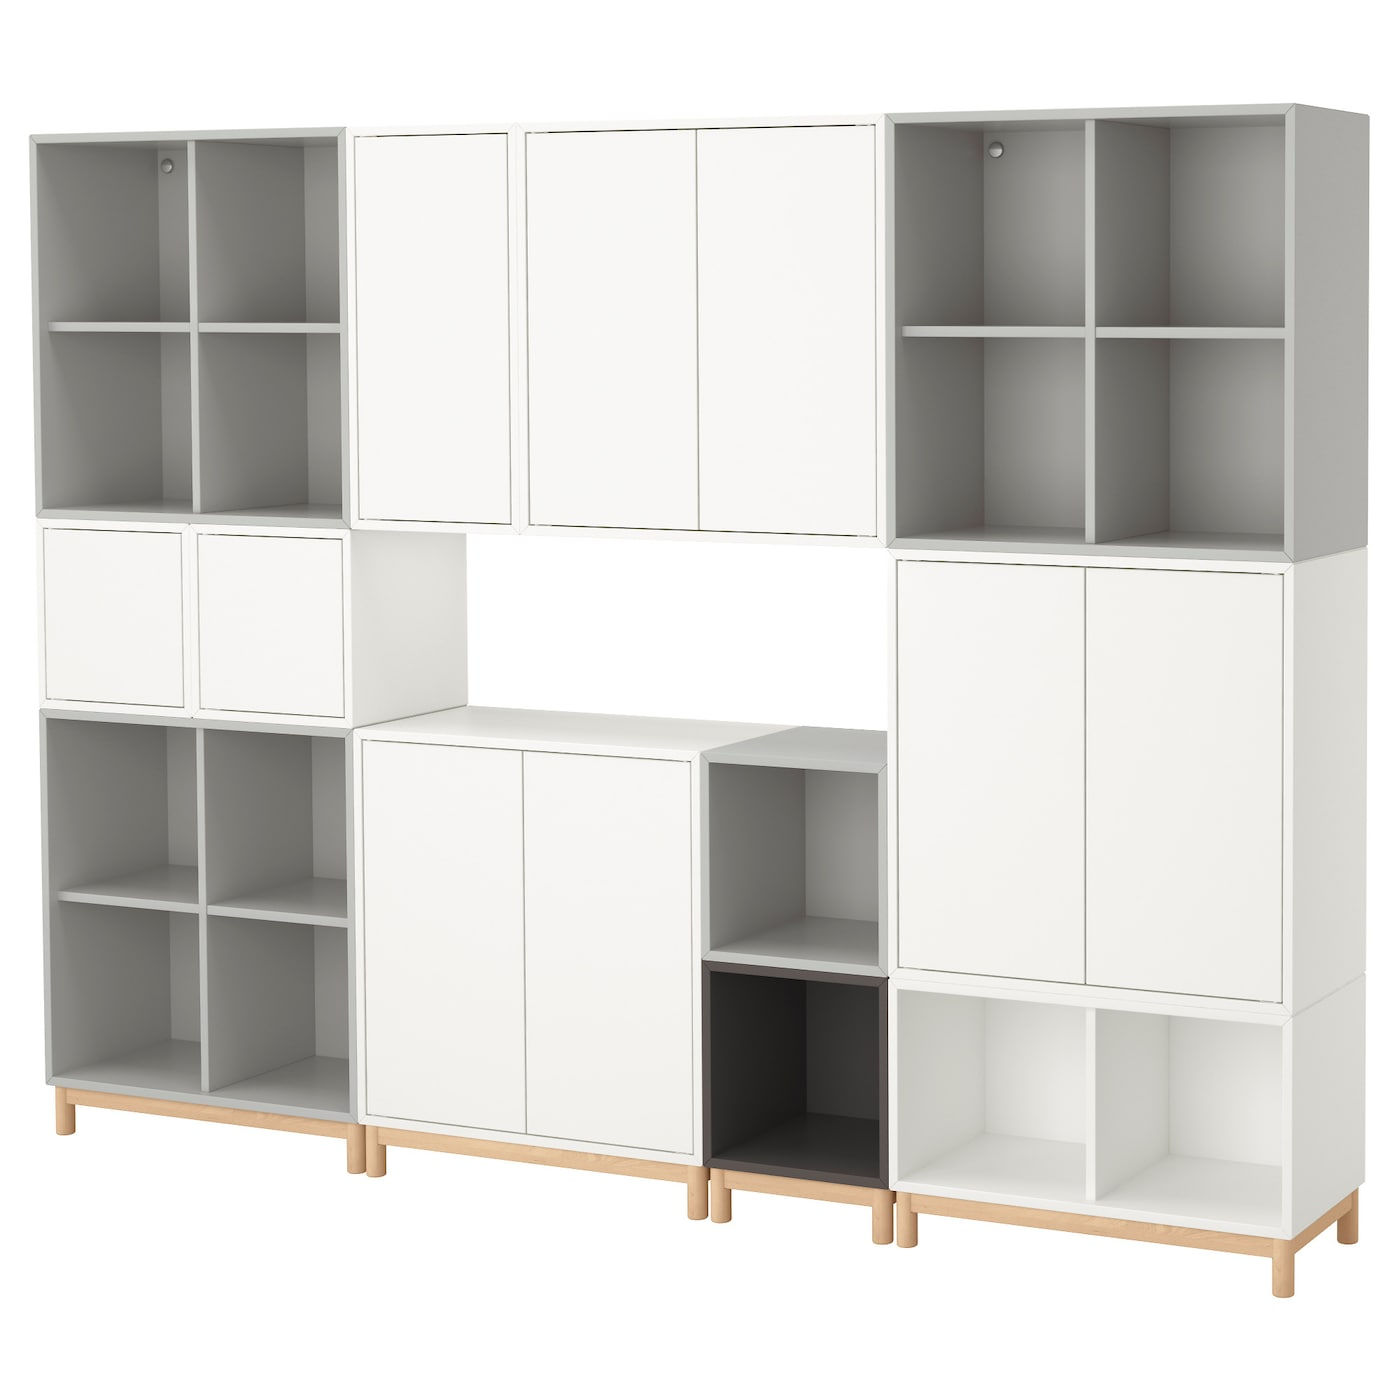 Eket cabinet combination with legs white light grey dark grey 245x35x185 cm - Caisson mural de rangement ikea ...